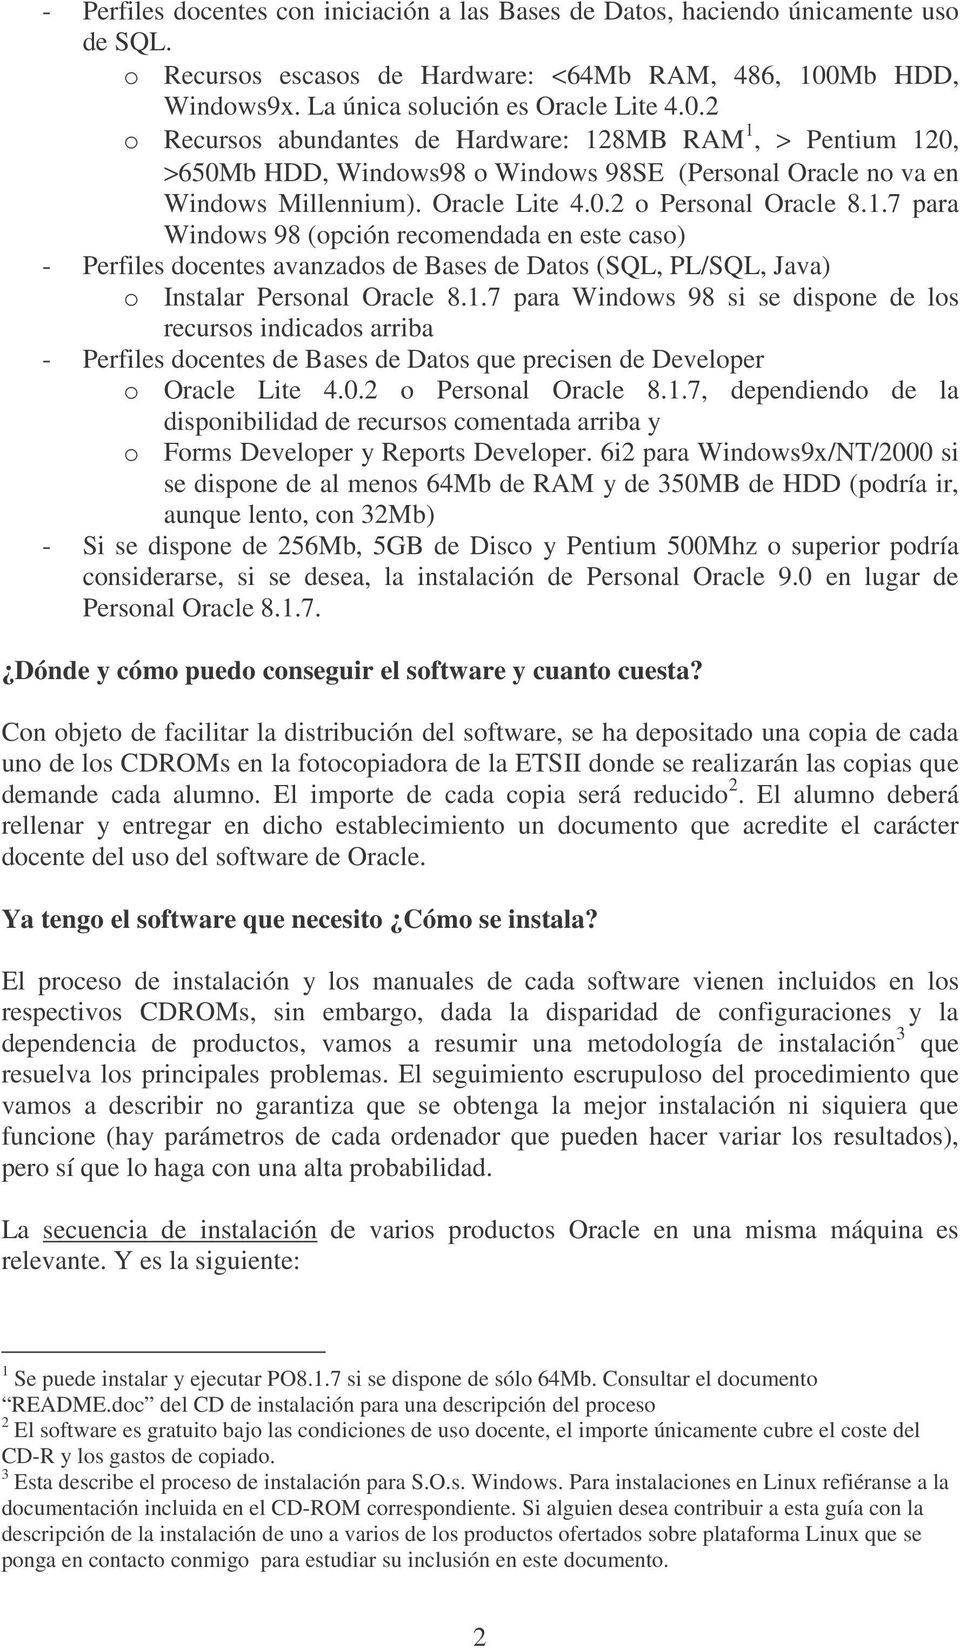 2 o Recursos abundantes de Hardware: 128MB RAM 1, > Pentium 120, >650Mb HDD, Windows98 o Windows 98SE (Personal Oracle no va en Windows Millennium). Oracle Lite 4.0.2 o Personal Oracle 8.1.7 para Windows 98 (opción recomendada en este caso) - Perfiles docentes avanzados de Bases de Datos (SQL, PL/SQL, Java) o Instalar Personal Oracle 8.